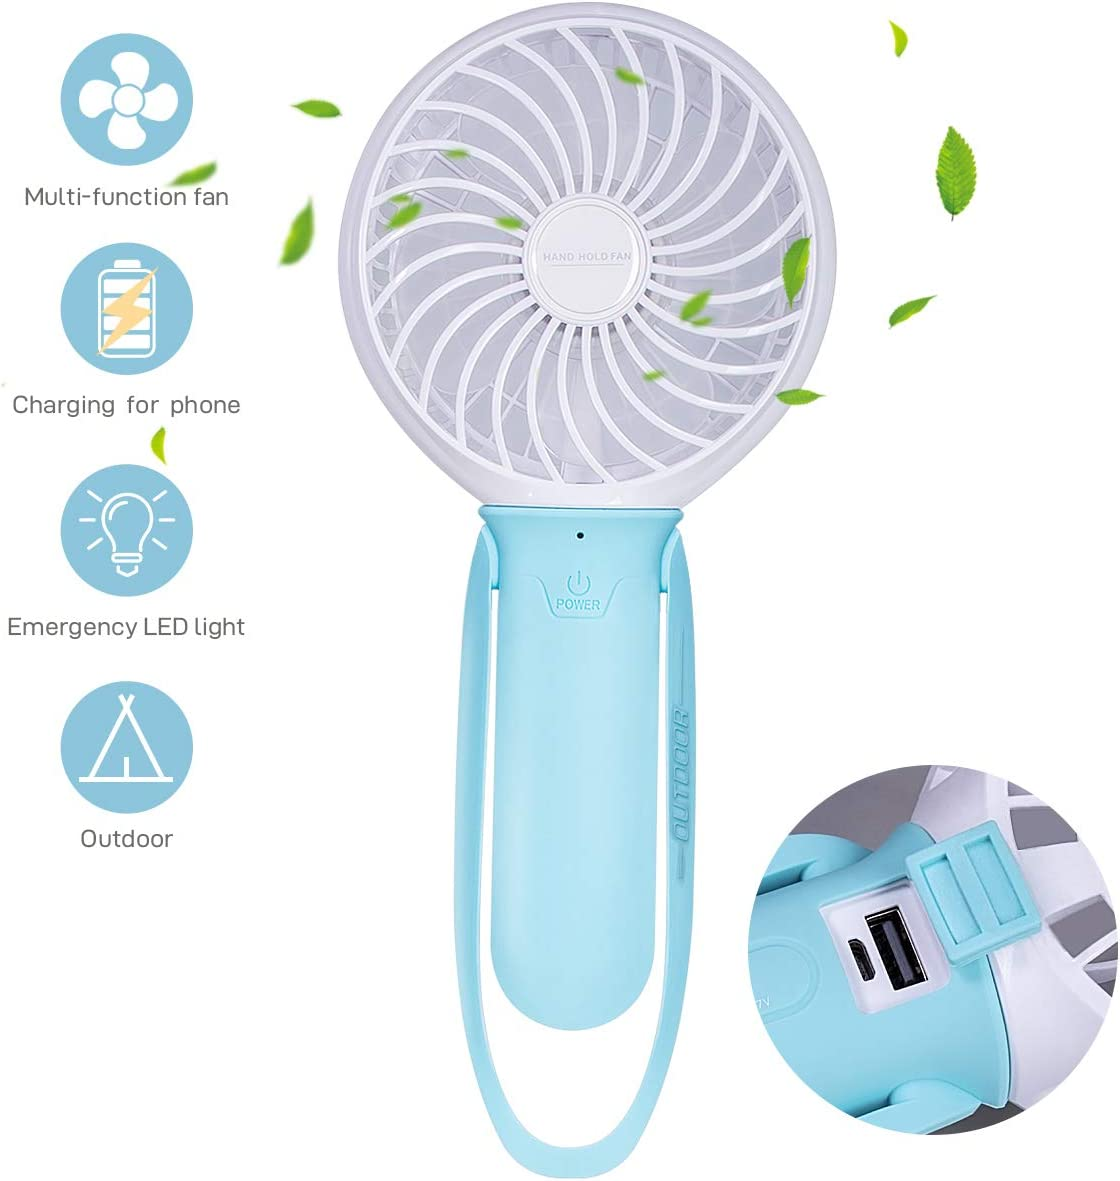 MATEPROX Silicone Handheld Fan,Battery Operated Fan Mini Fan Outdoor Fan with LED Light,USB Charging Personal Portable Fan for Home Office Outdoor Travel Camping Blue